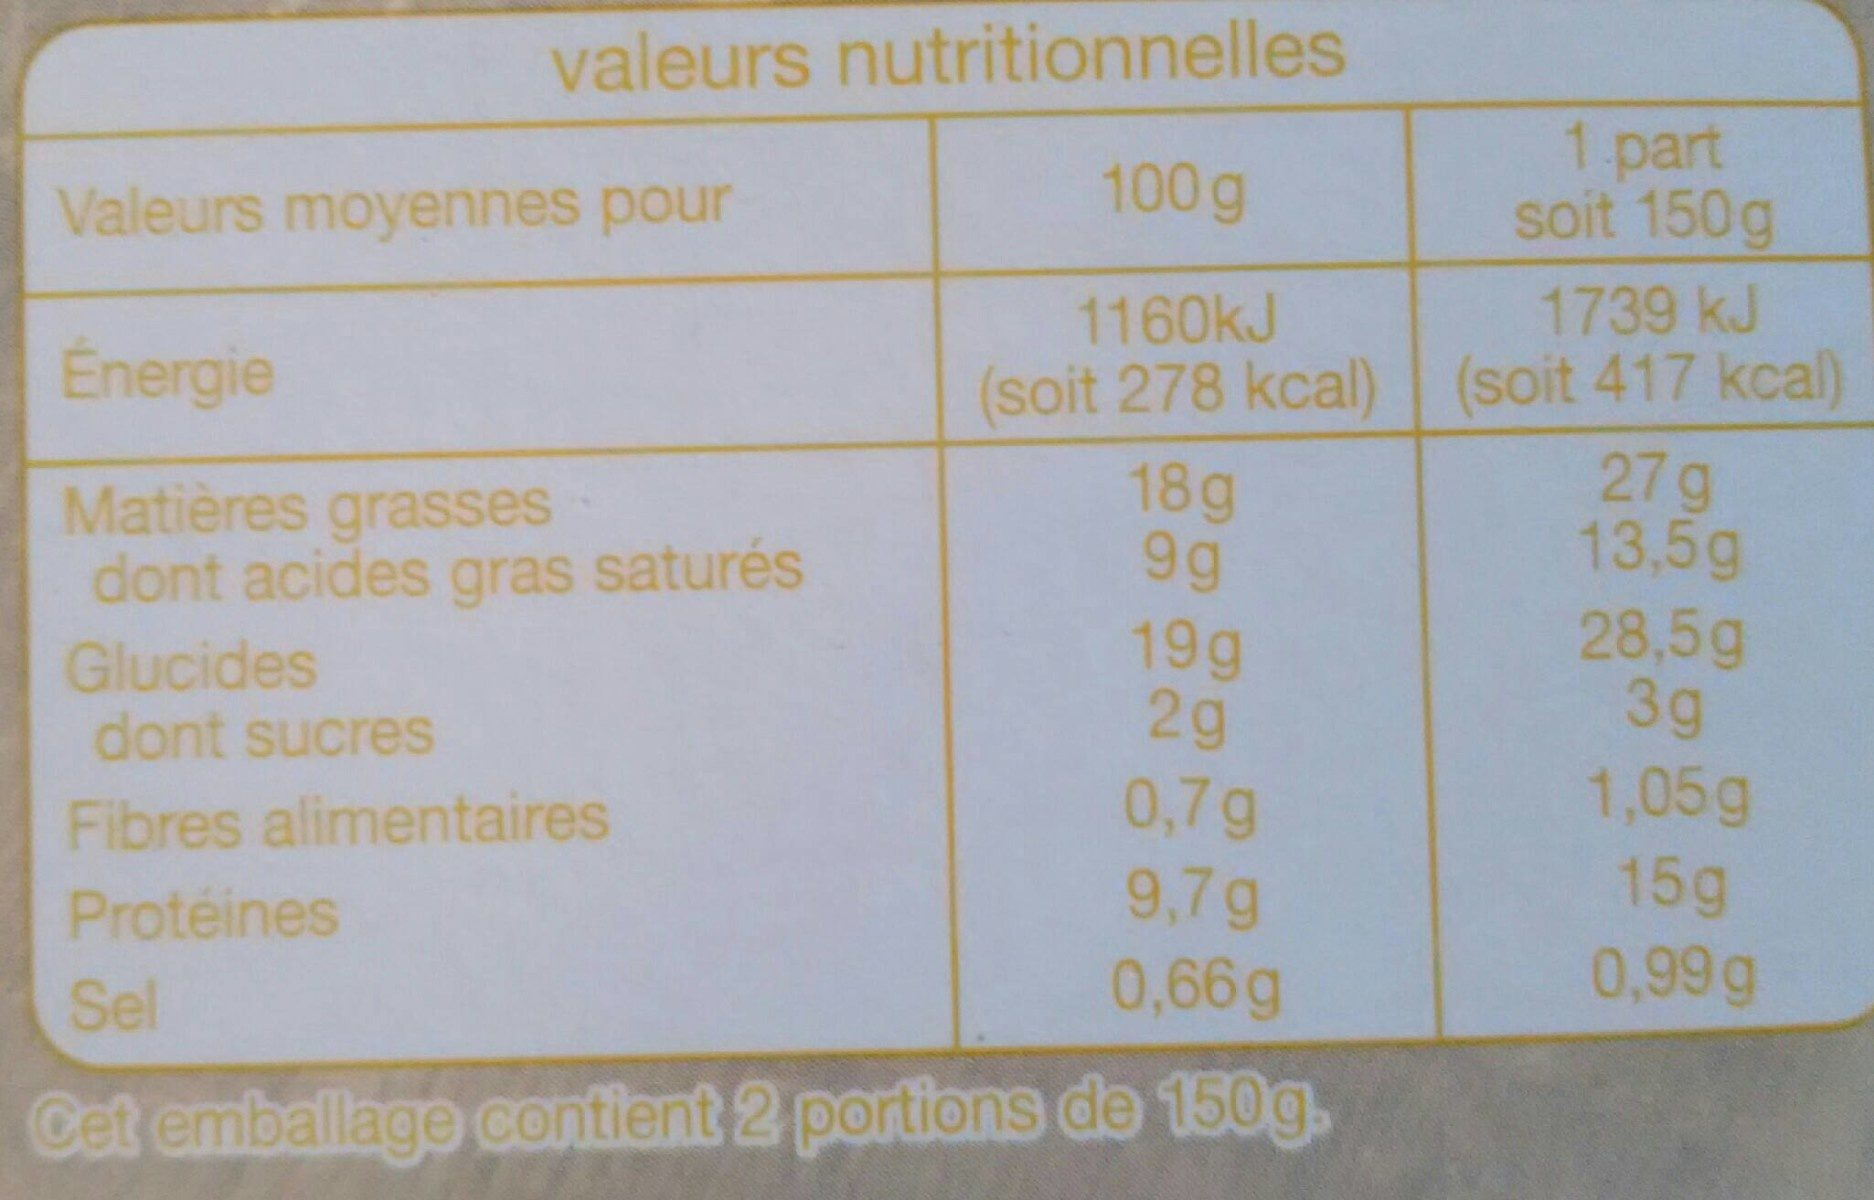 Tarte au fromage - Nutrition facts